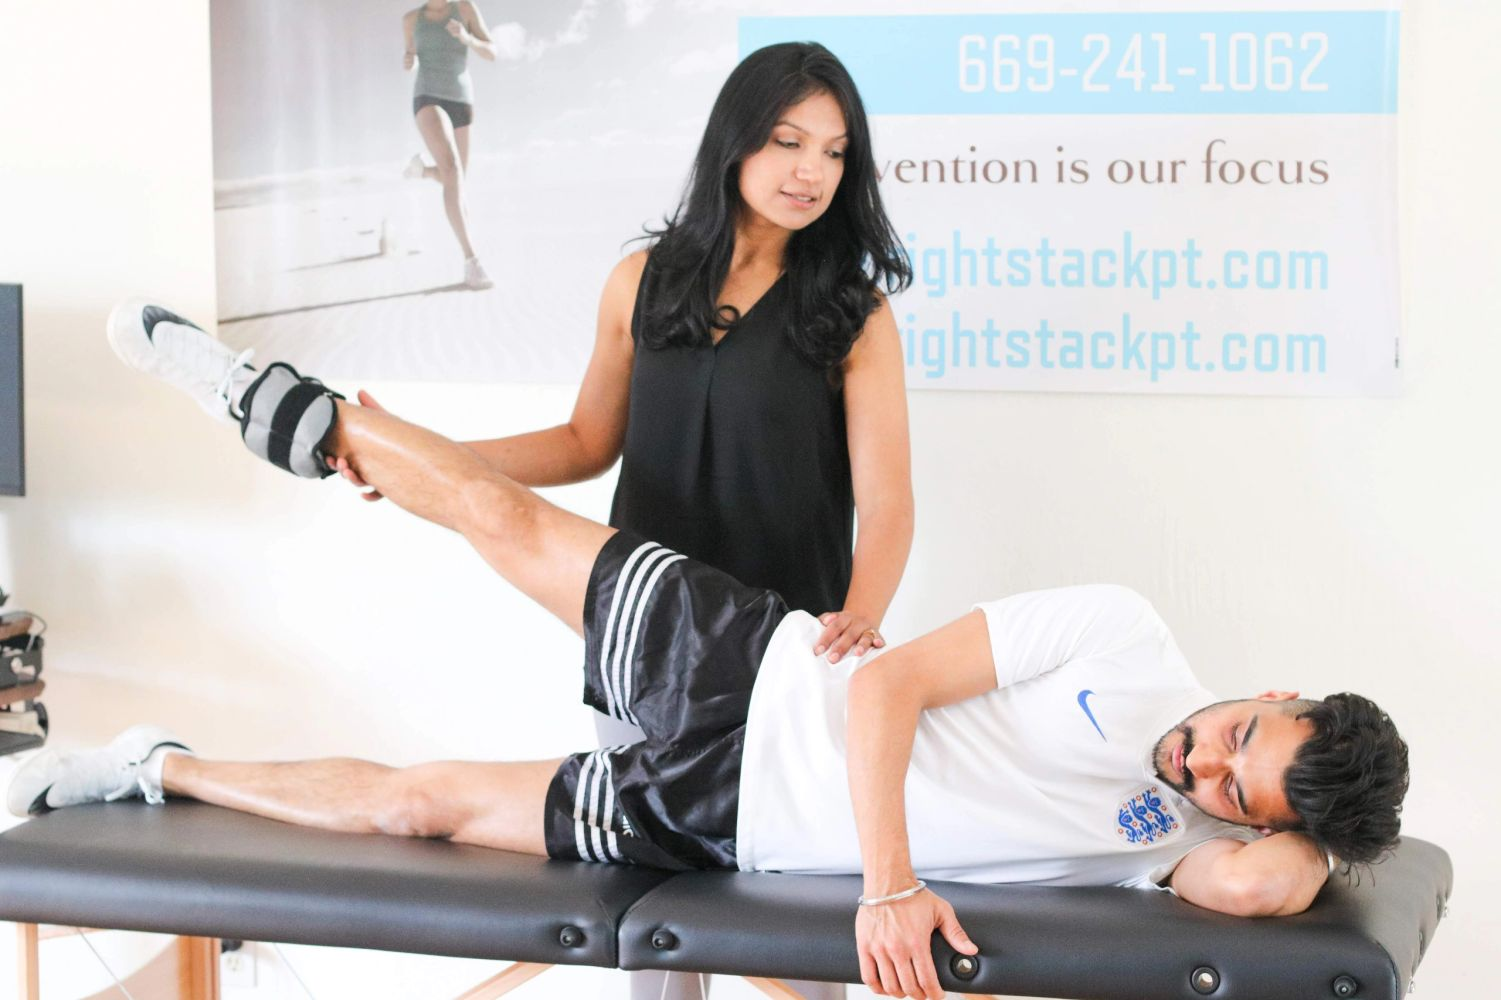 Right Stack Physical therapy, California Physical Therapy, PT in Sunnyvale, Physical therapy